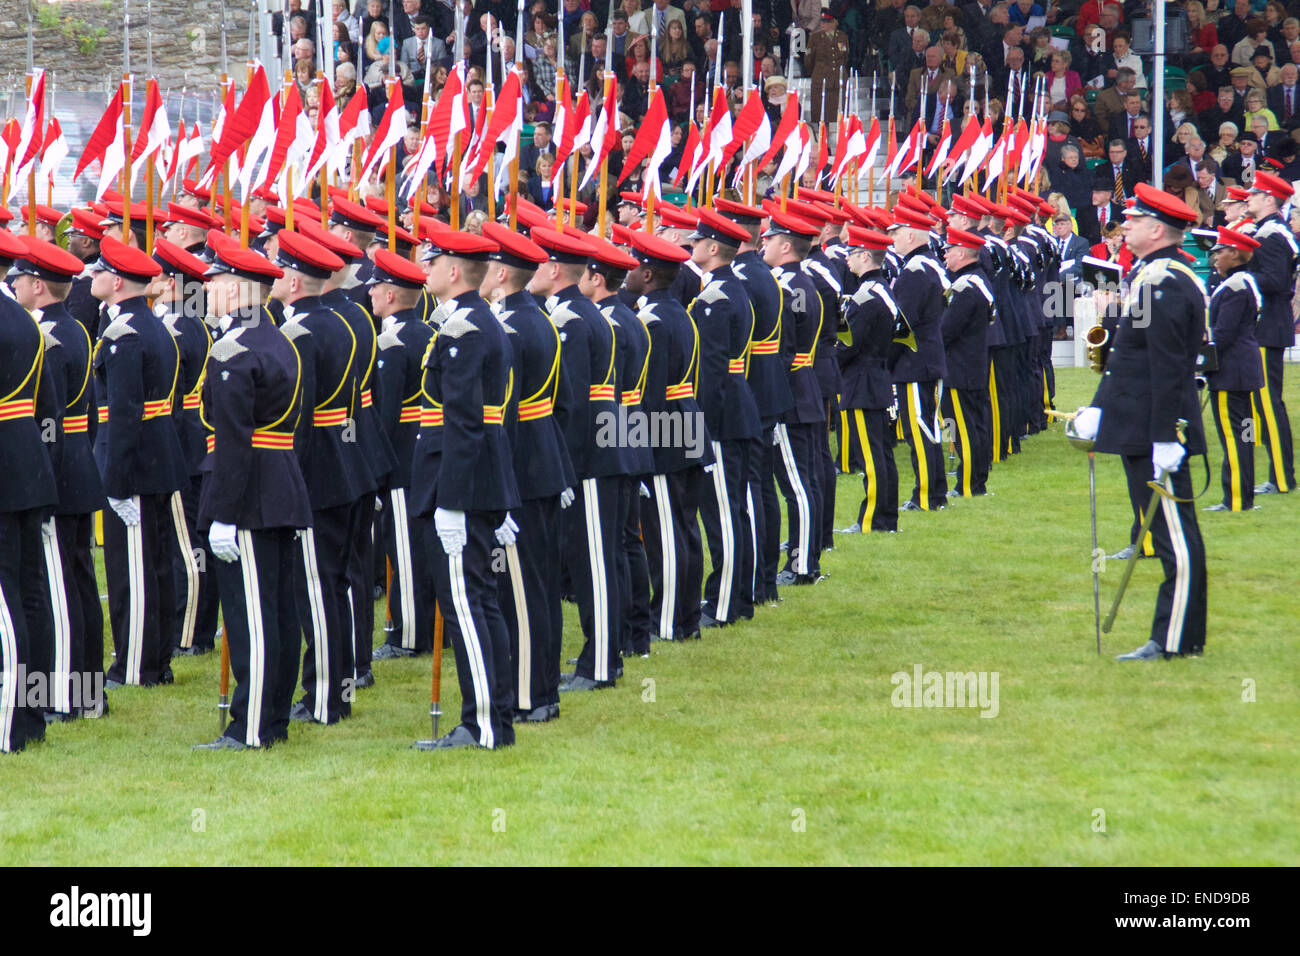 Richmond Castle, North Yorkshire, UK. 2nd May, 2015. Amalgamation of the 9th/12th Royal Lancers (Prince of Wales's) - Stock Image